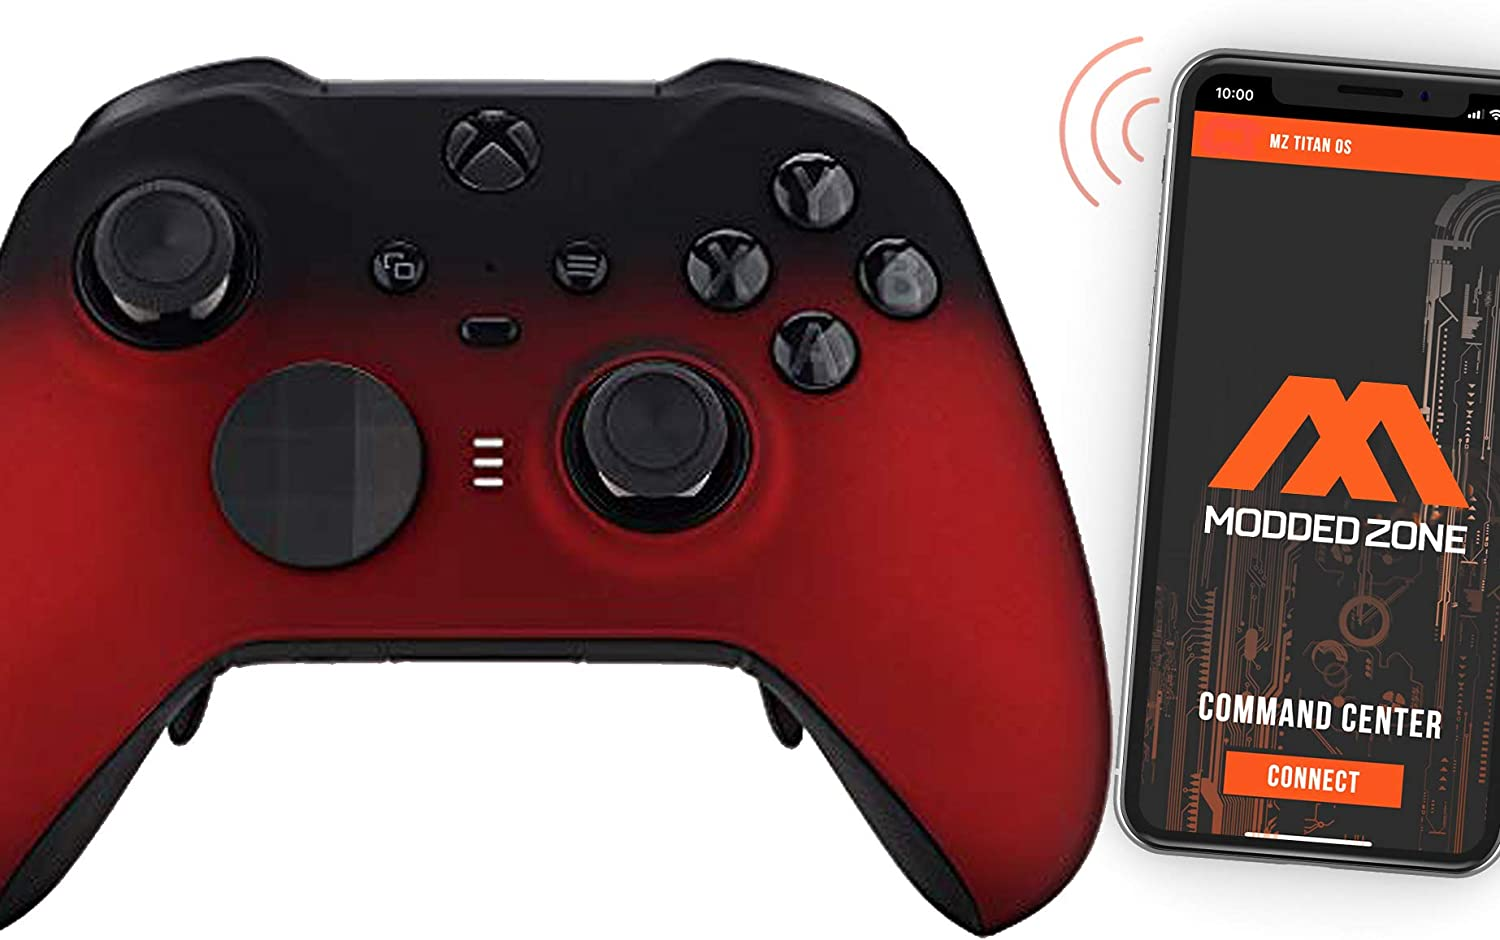 Shadow Red Custom Modded Controller Compatible with Xbox One Elite Series 2 Soft Touch Finish for All Shooter Games MW BO4